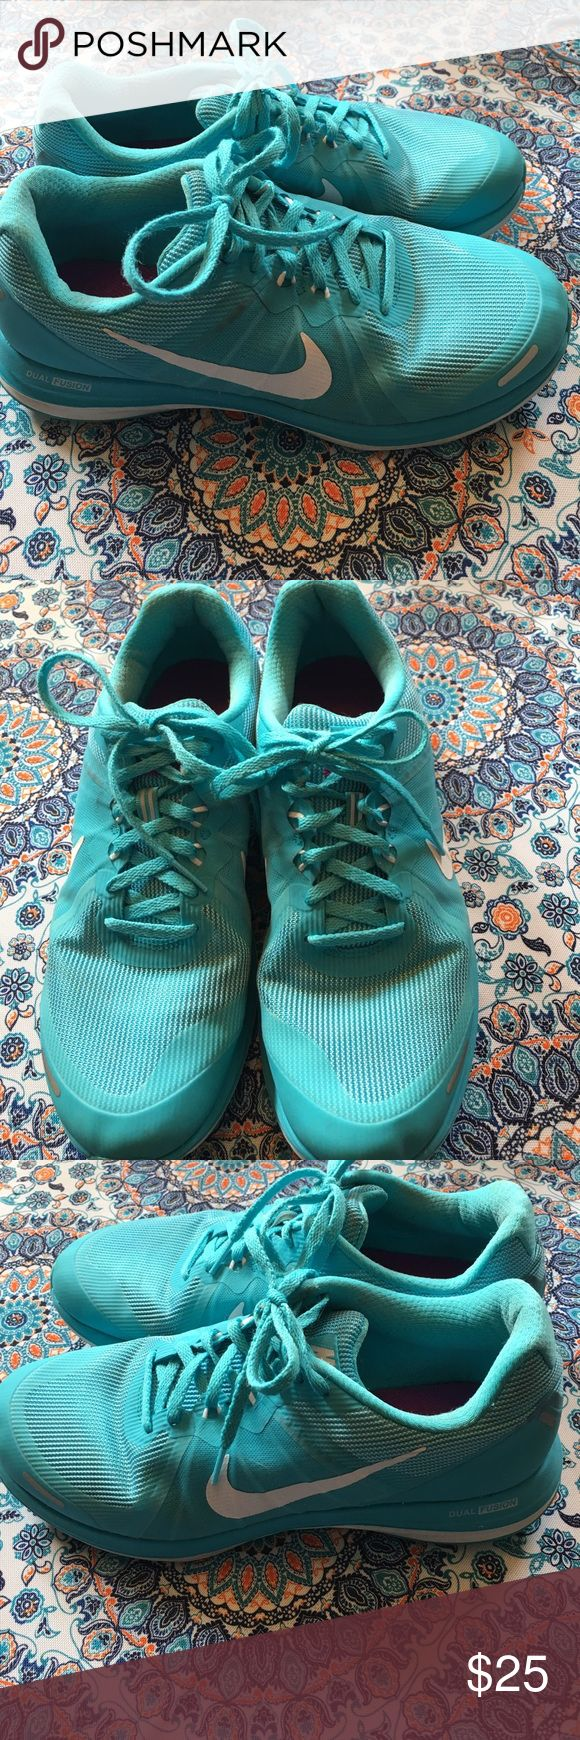 Nike Dual Fusion Size 10 Ladies Shoes Athletic Teal Nike dual fusion size 10. Nice condition. Has some slight discoloration as shown under the clear back trim. See photo. Otherwise great shape. Nike Shoes Athletic Shoes